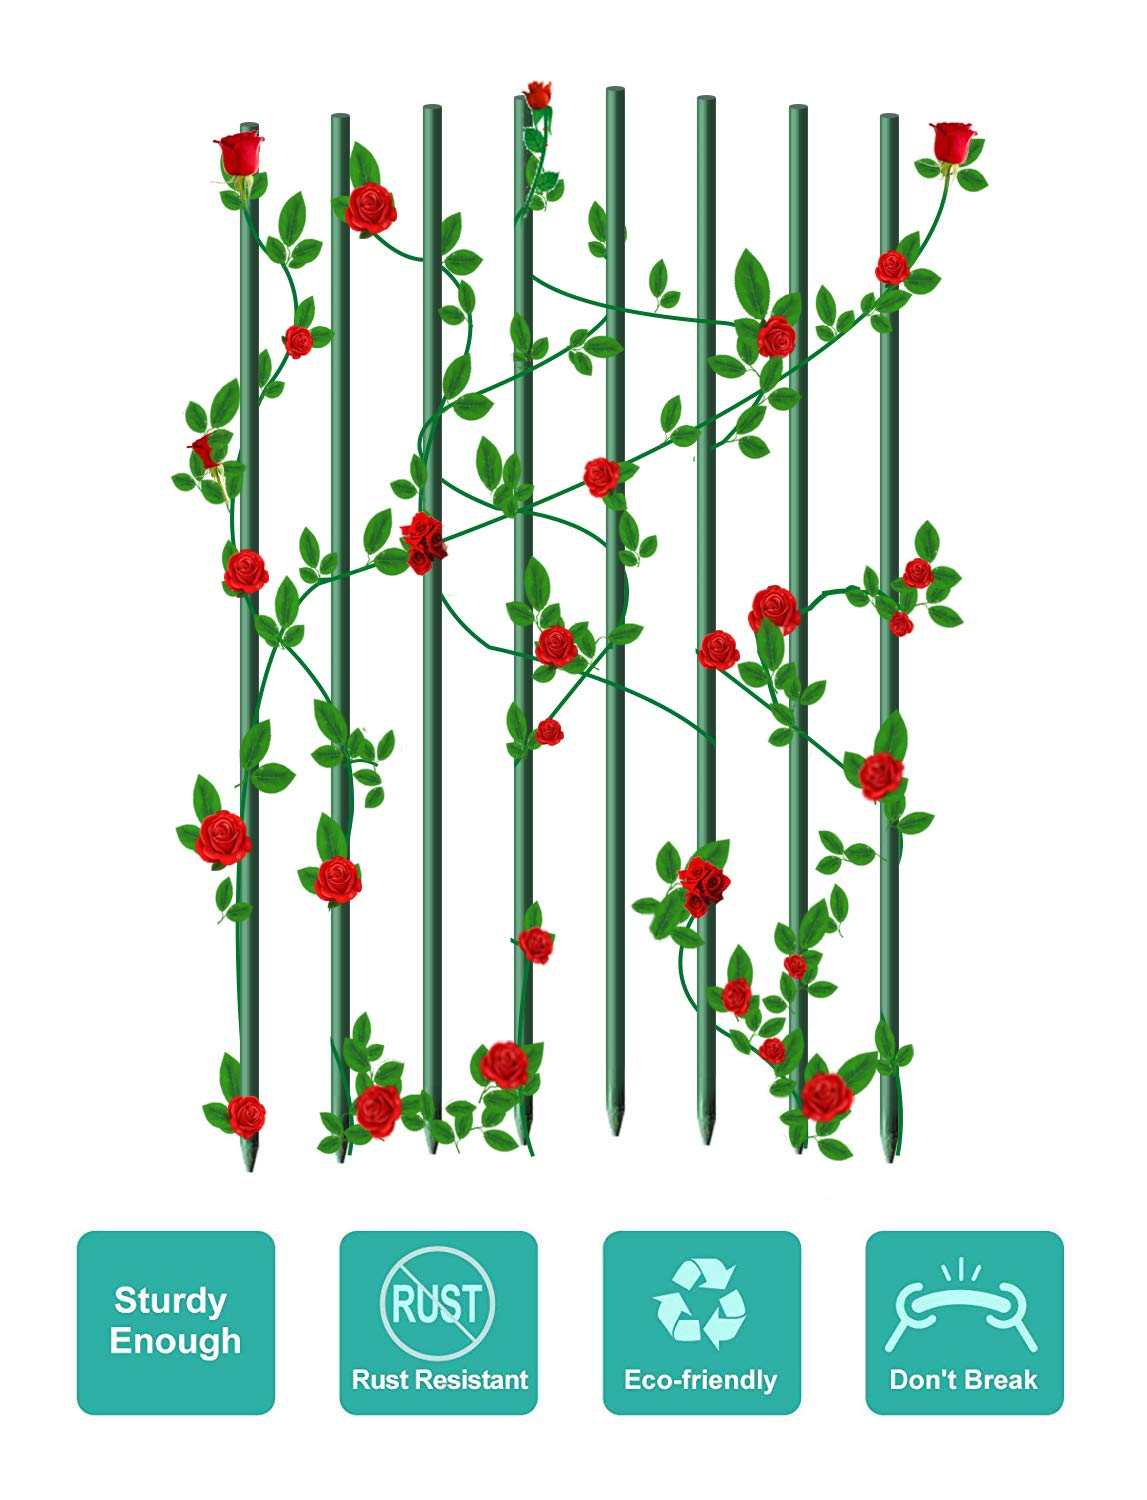 """EcoStake Garden Stakes 1/4"""" Dia 4 FT FRP Plant Supporting Stakes for Climbing Tomato Cucumber Strawberry Bean Tree, Pack of 8, Dark Green"""